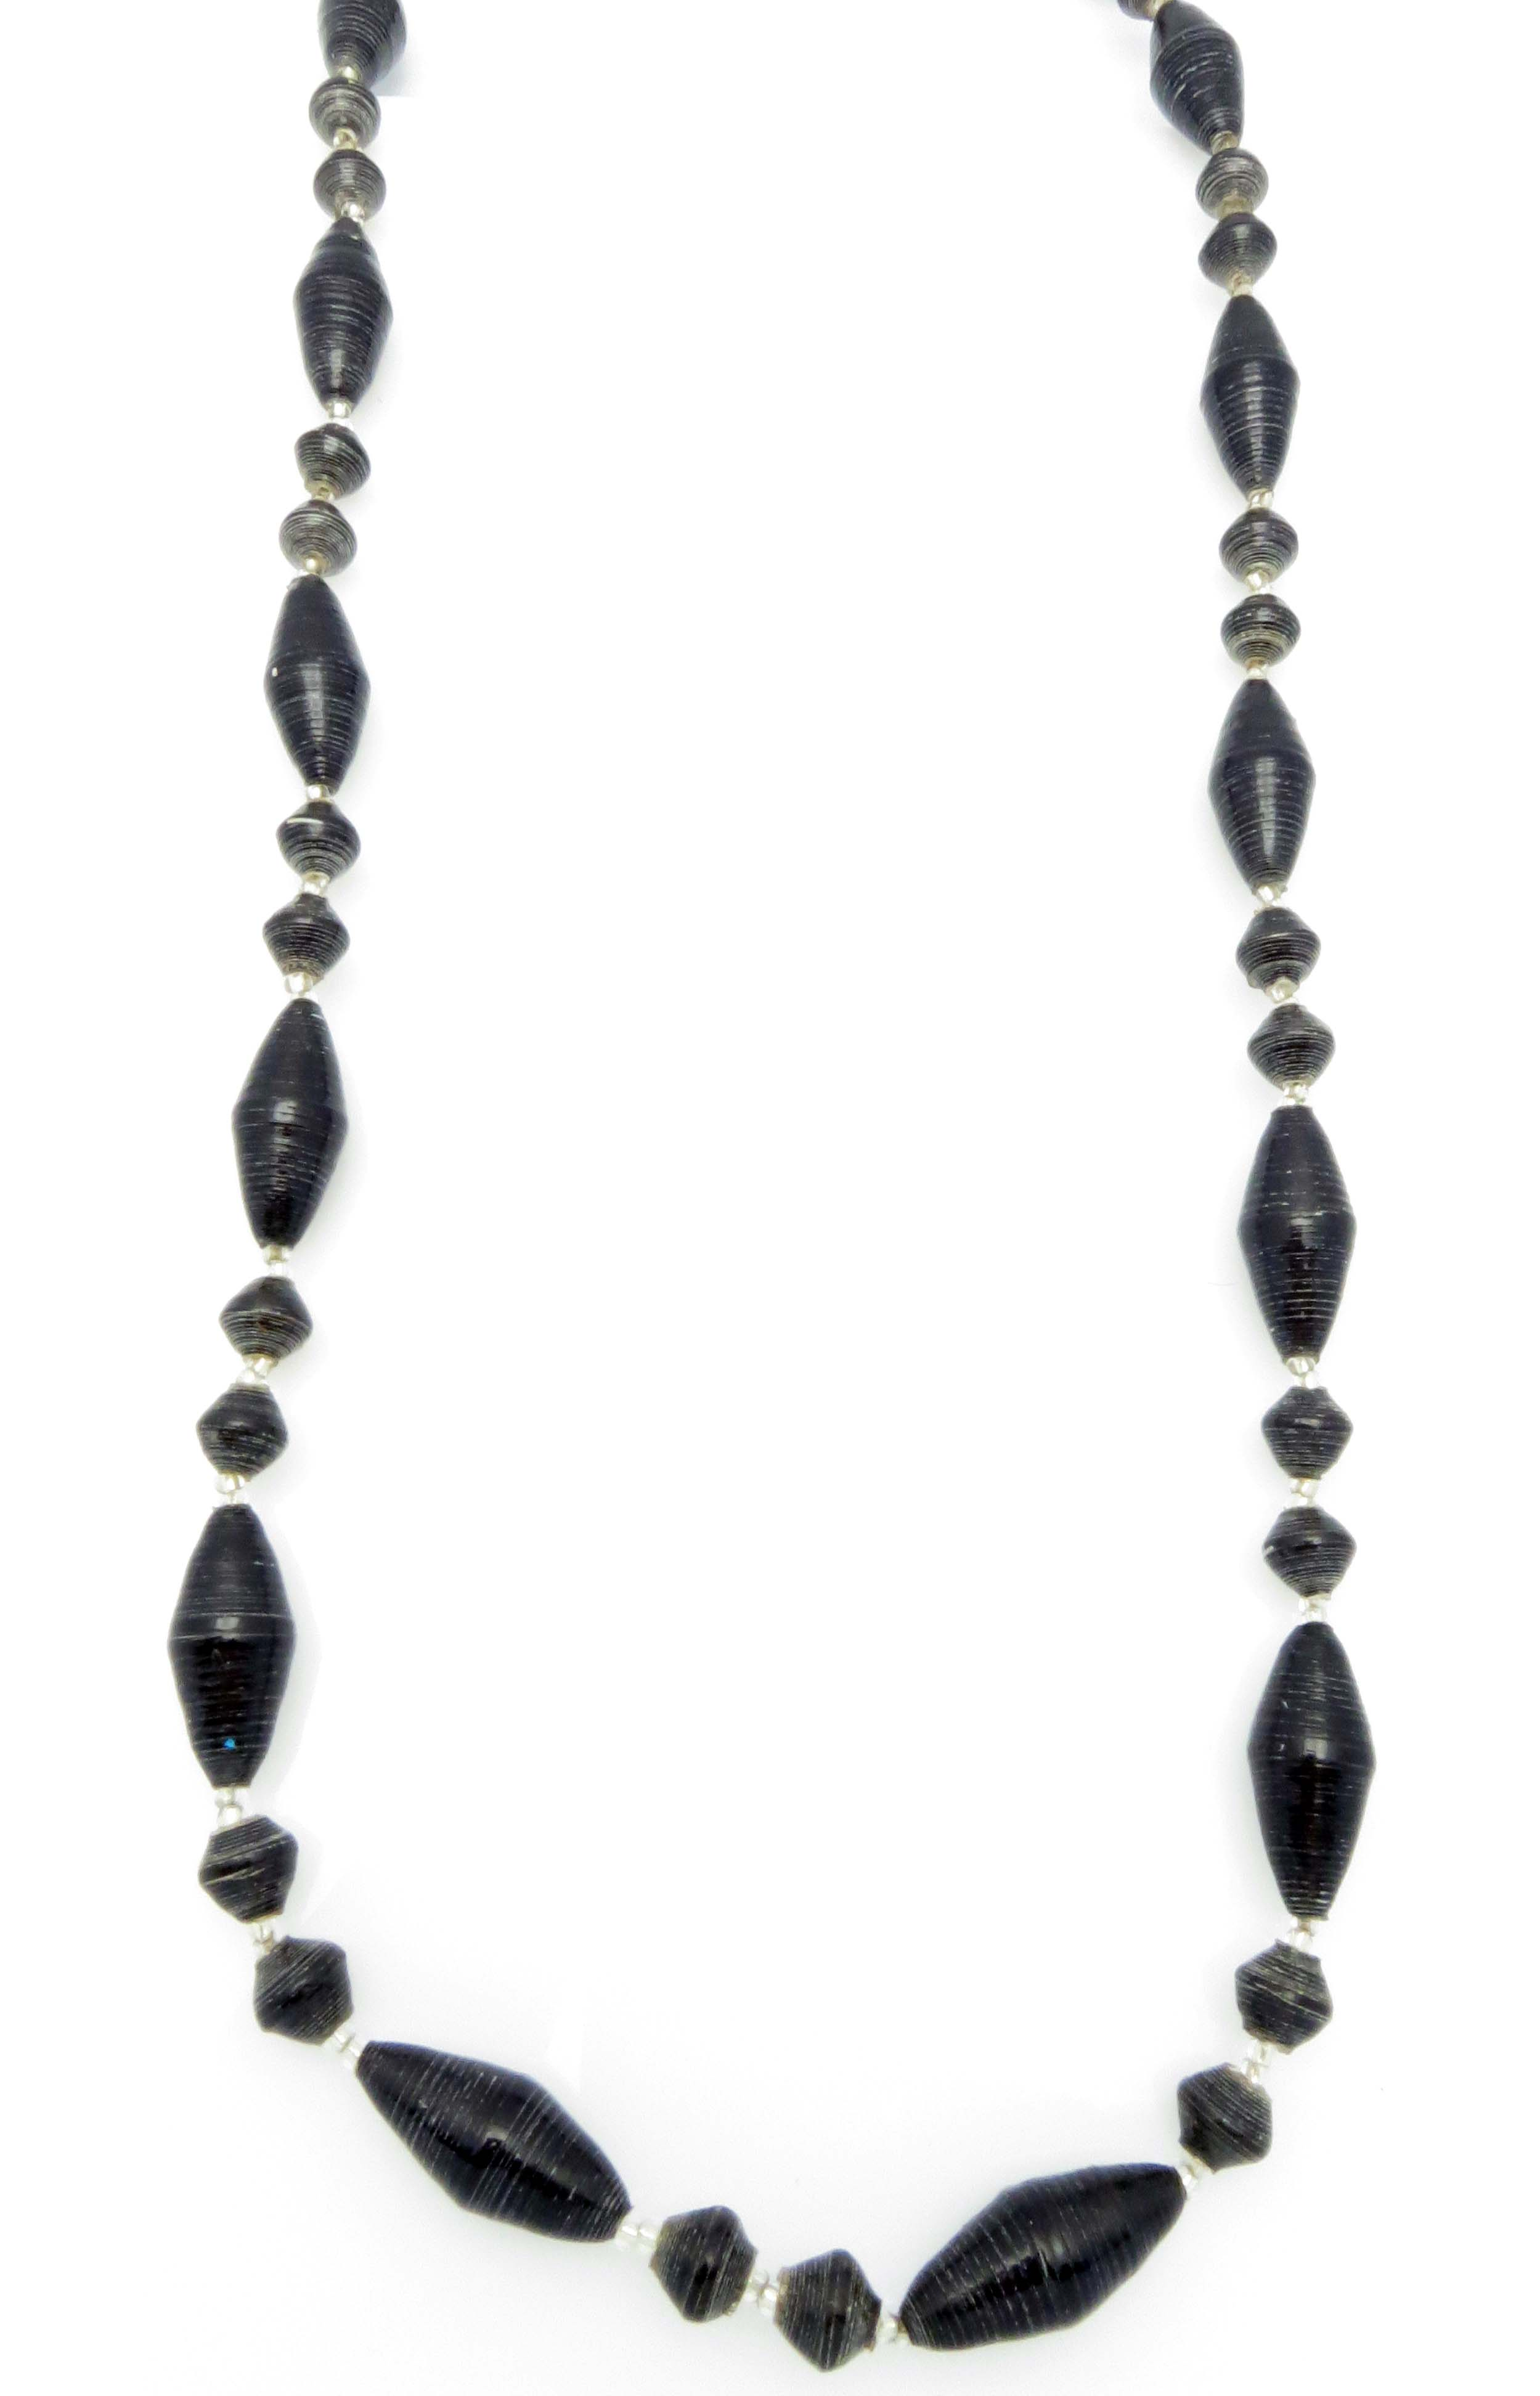 Black oval bead necklace